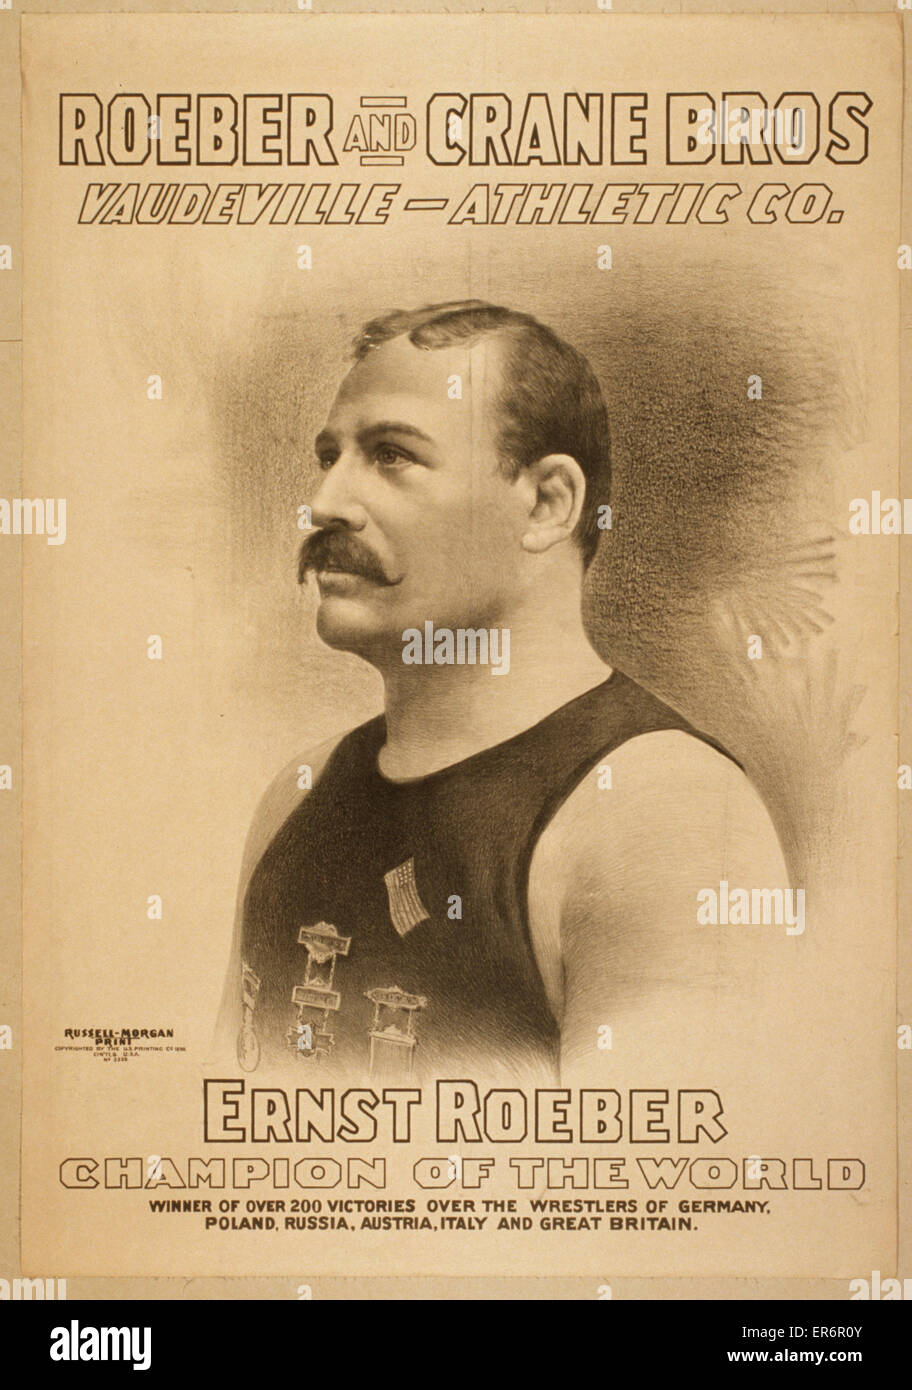 Roeber and Crane Bros Vaudeville-Athletic Co. Date c1898. - Stock Image